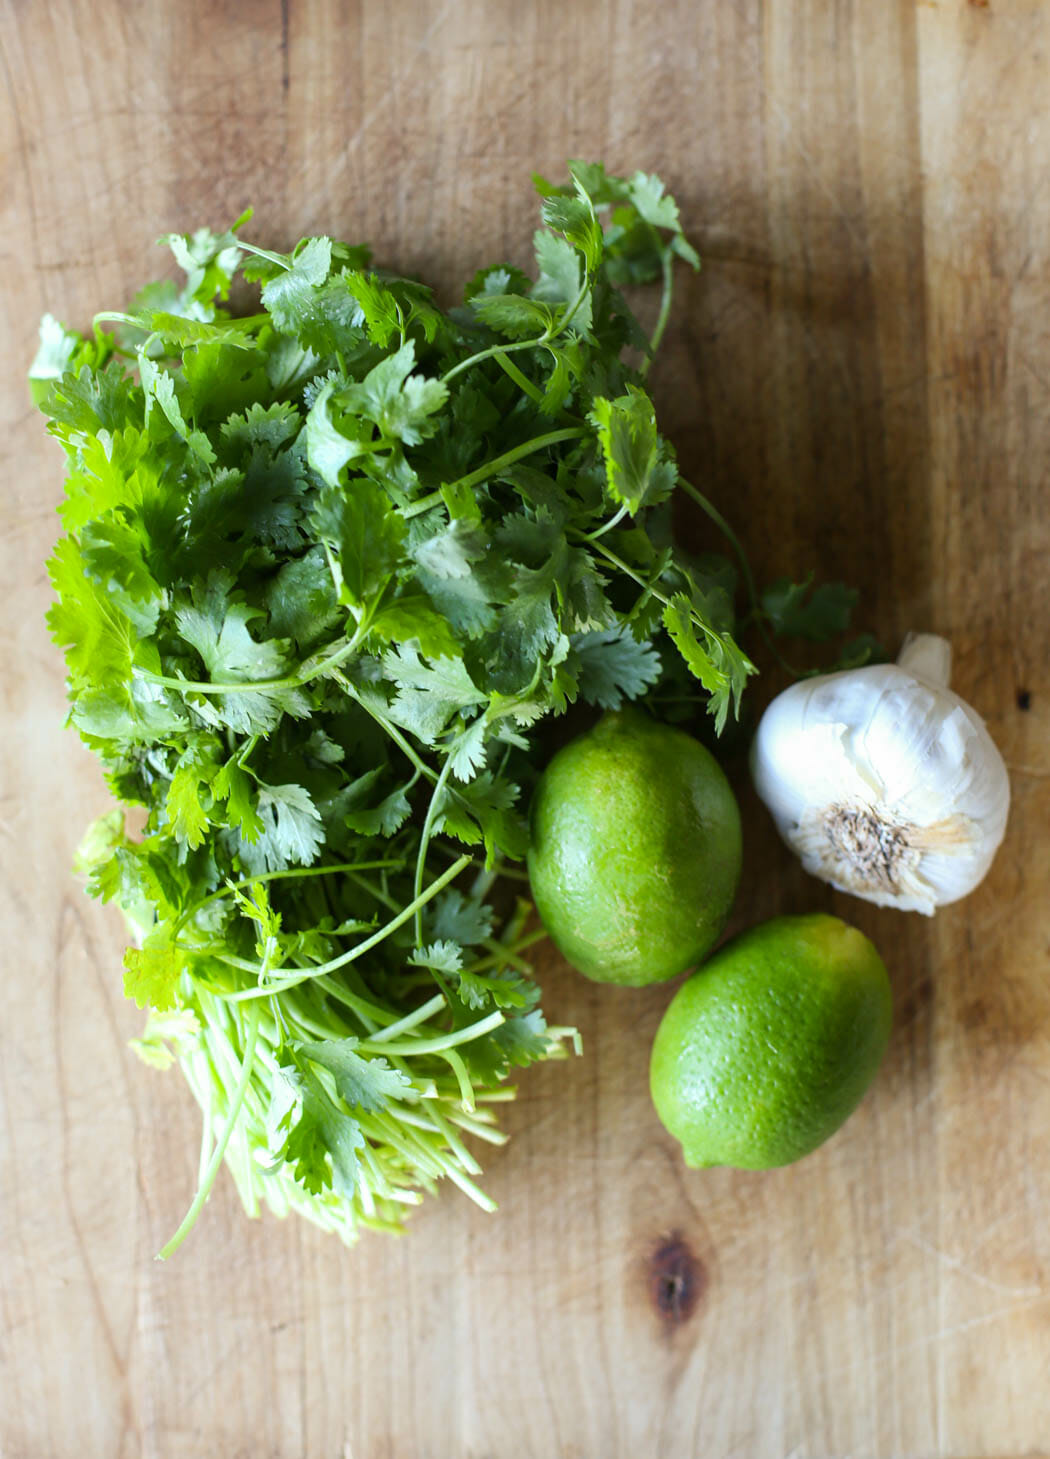 Fresh ingredients for Cafe Rio Copy Cat Creamy Tomatillo Dressing from Our Best Bites